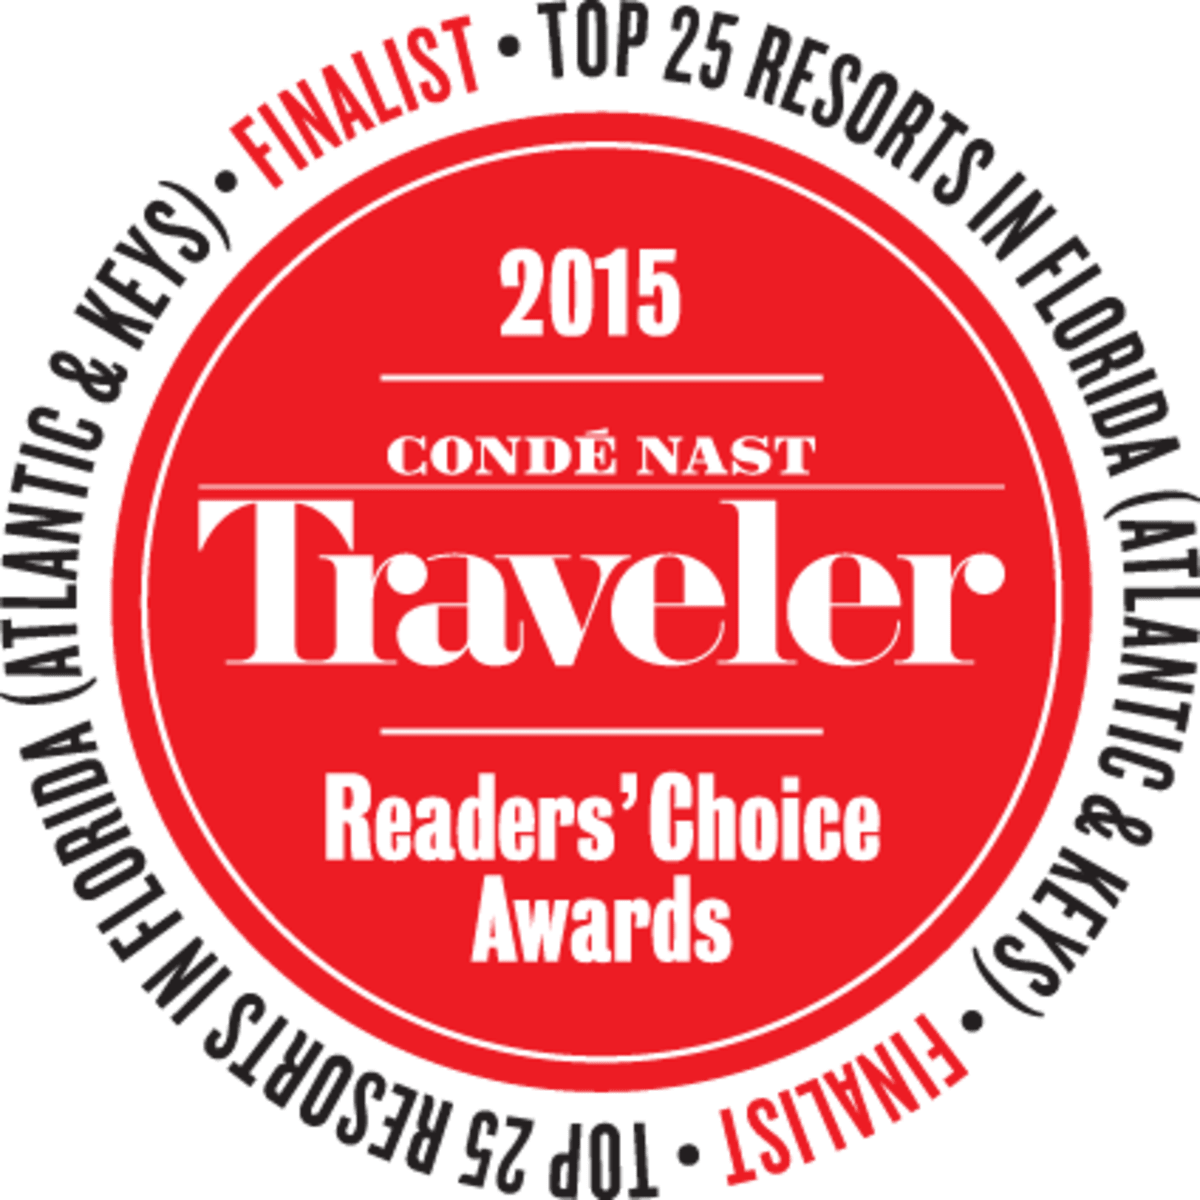 The Marker Resort Selected to Conde Nast Traveler Readers Choice